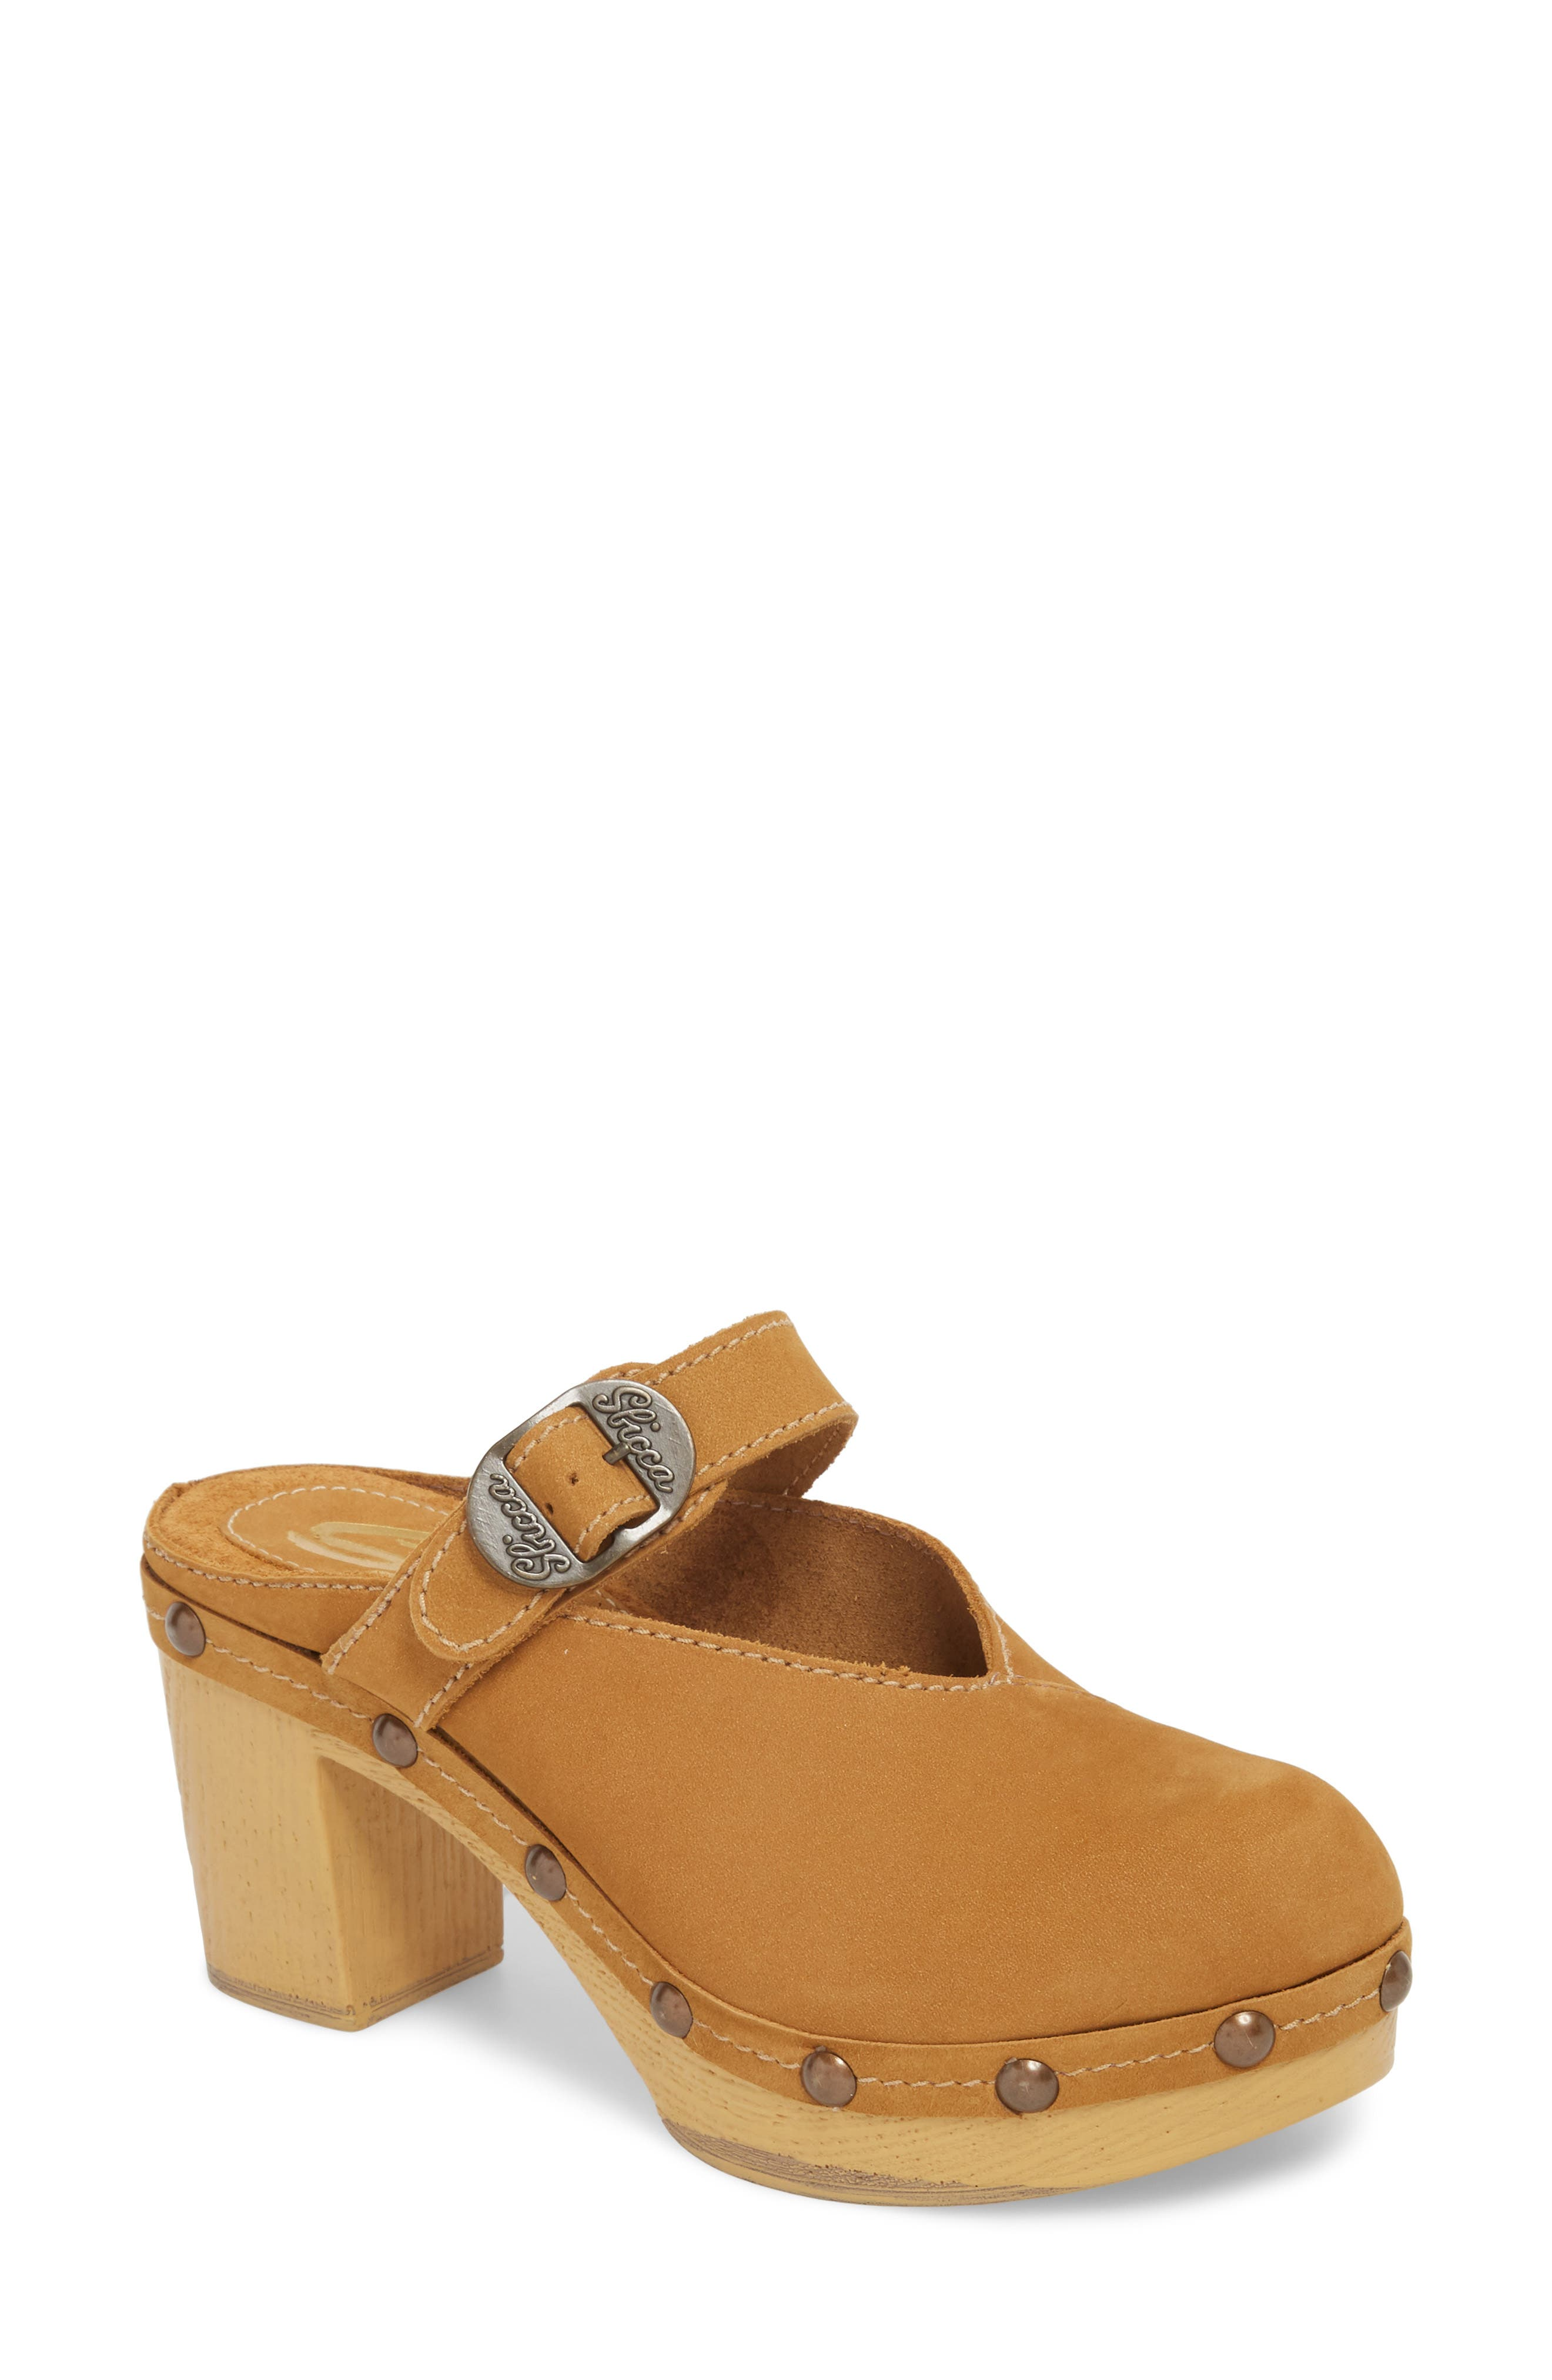 Natacha Studded Mary Jane Clog,                         Main,                         color, TAN